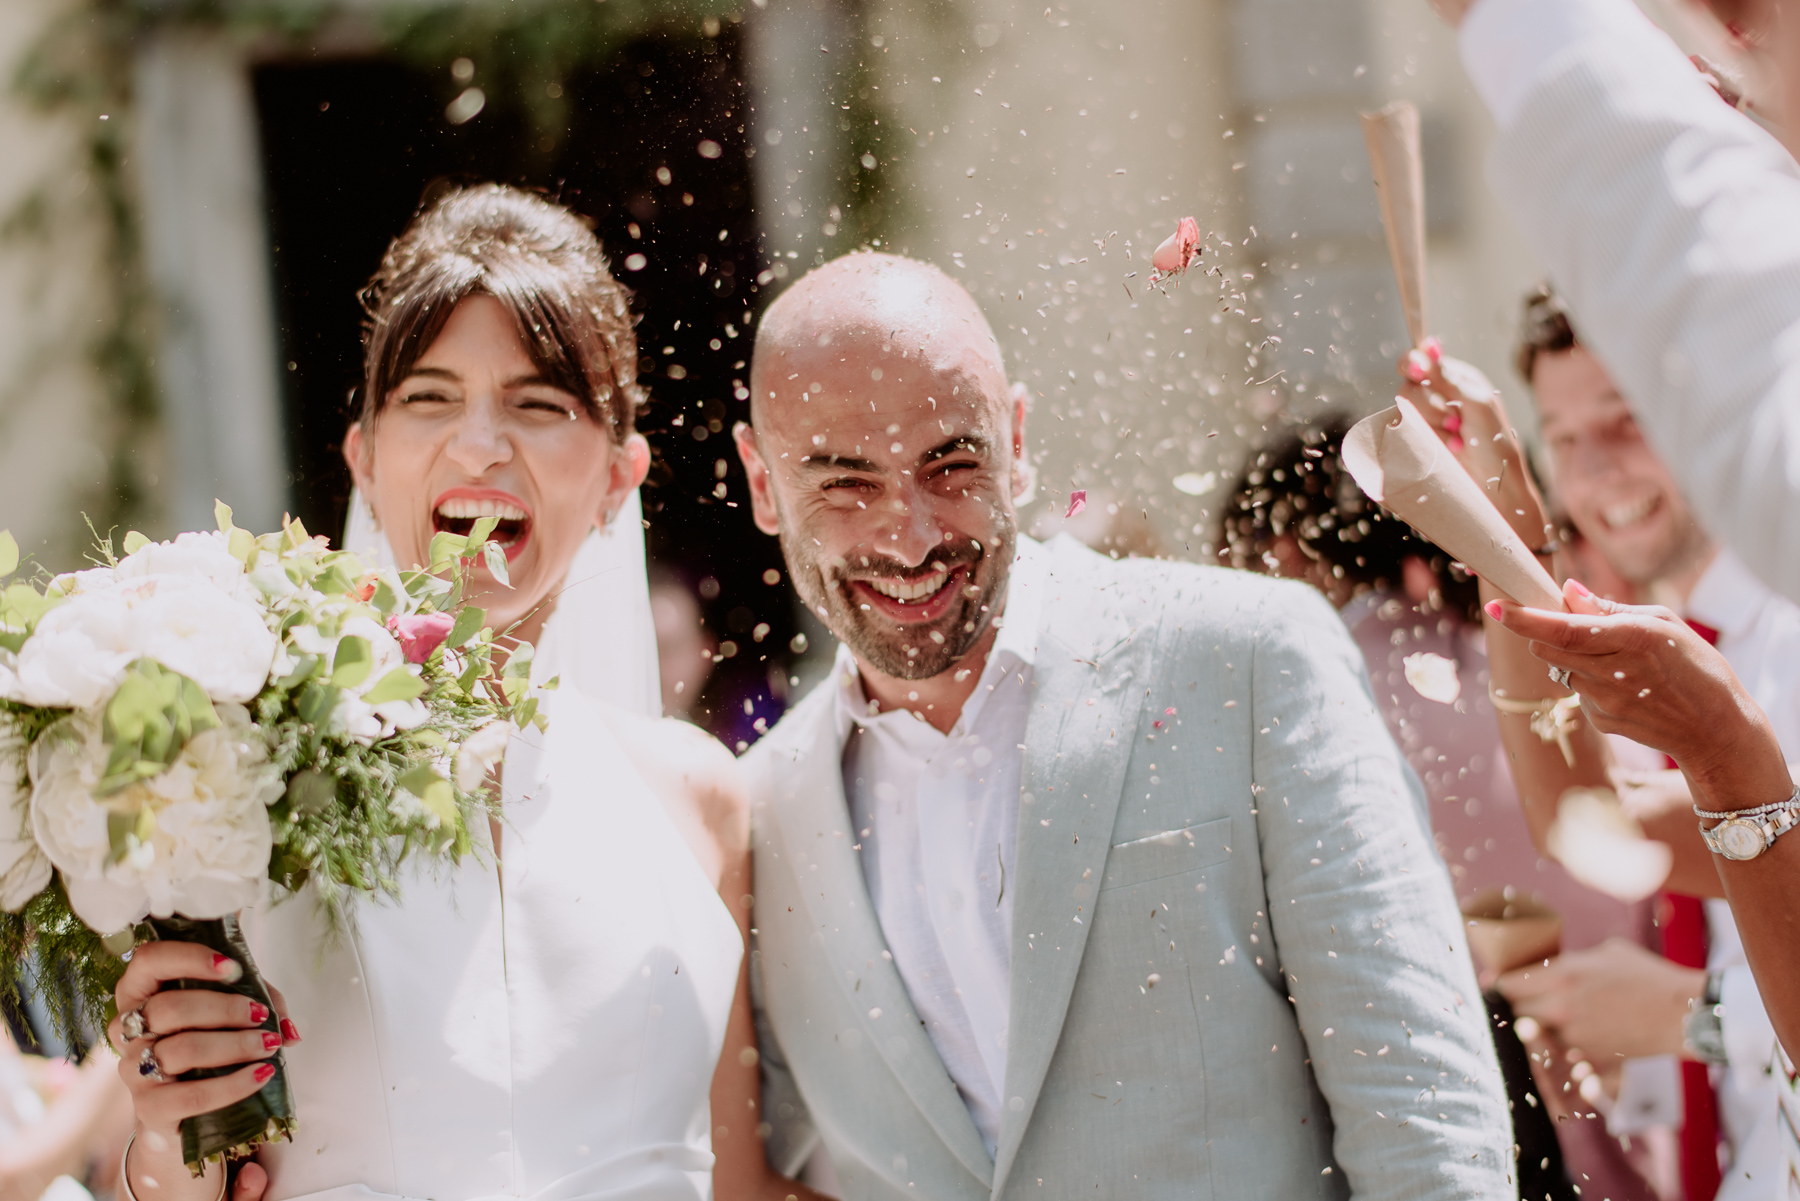 Creative Wedding Photographer in Tuscany villa michaela rice rain confetti throwing